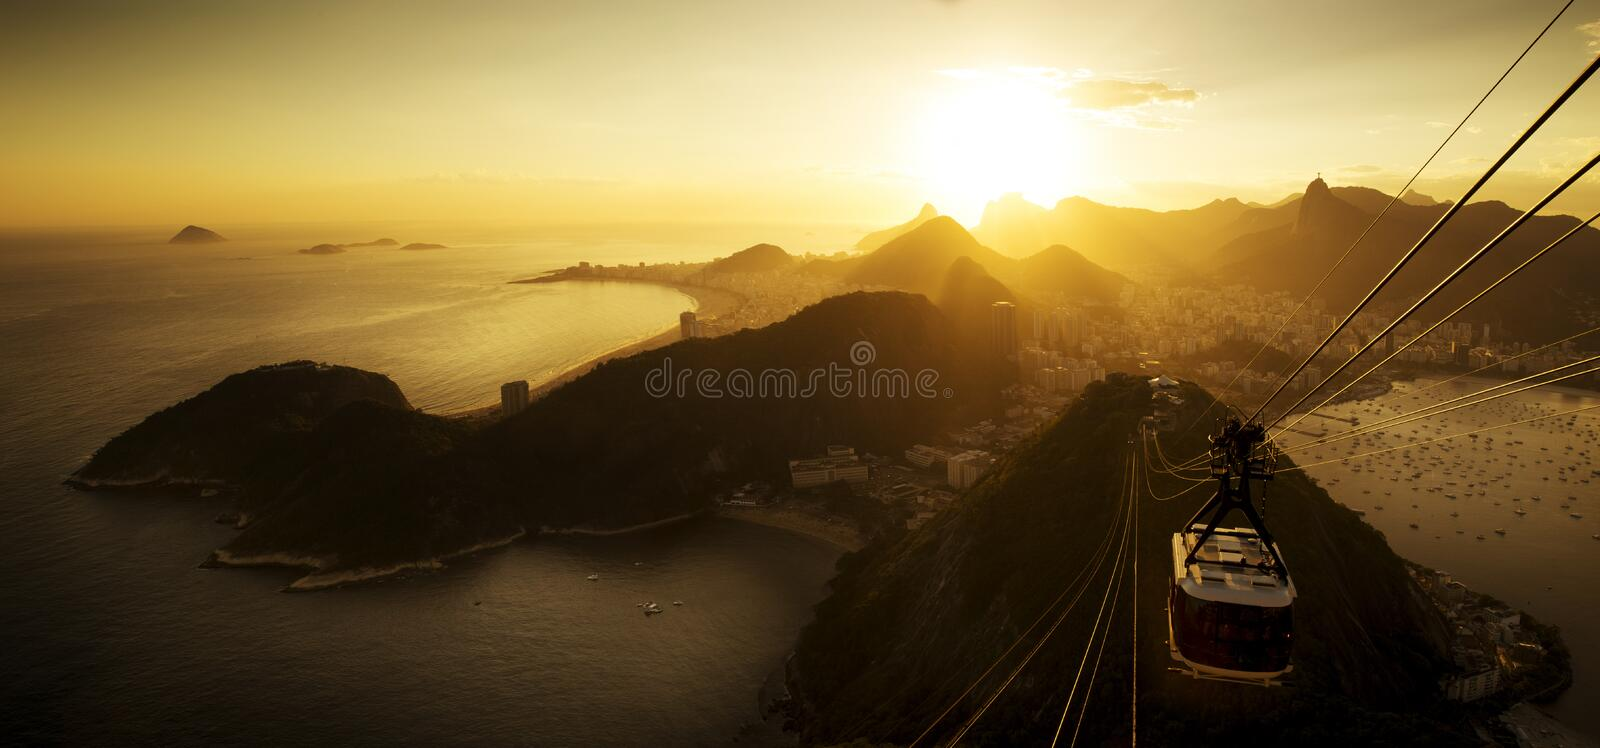 Aerial View of Rio de Janeiro from the Sugarloaf Mountain royalty free stock photo